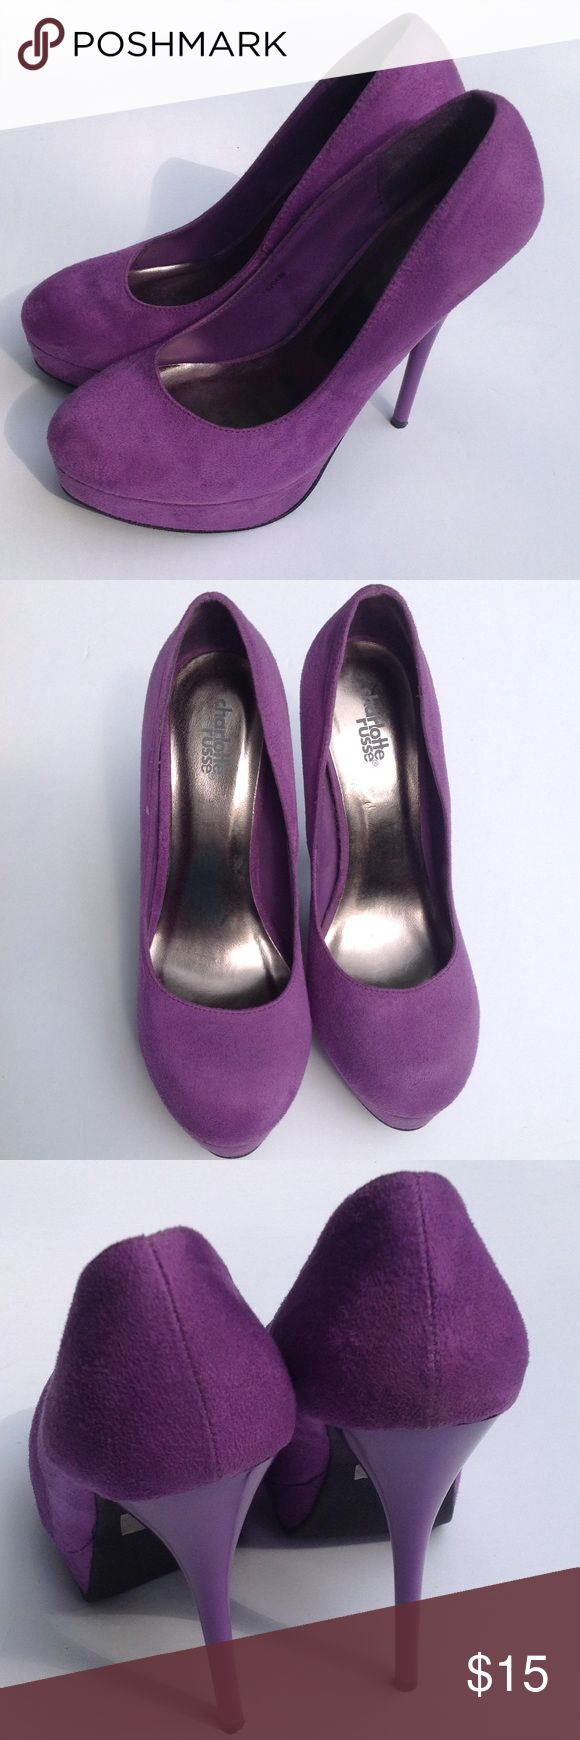 ✨ Charlotte Rousse Purple Faux Suede Platforms ✨ Charlotte Rousse Purple Microsuede Platforms❤️ Stunning Super Excellent Condition Worn only 3 times you can see some slight scrapes on bottom soles from the concrete parking lot... In photo #4 Charlotte Russe Shoes Platforms